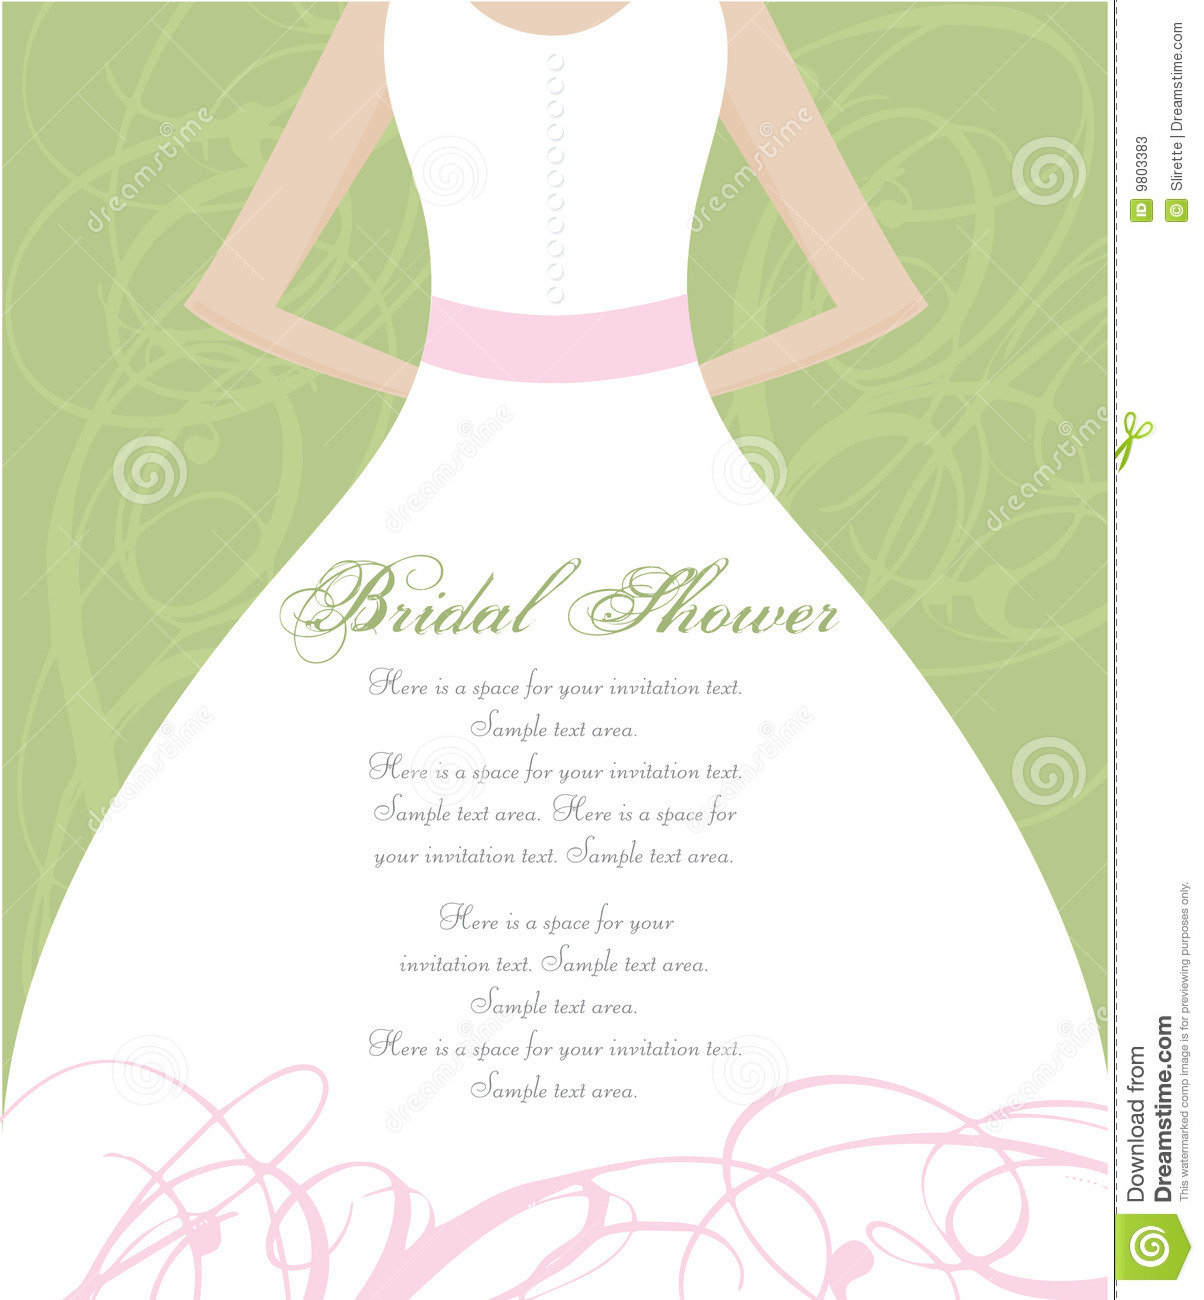 Bridal Shower Invitations Free Bridal Shower Invitations Clipart - Couples wedding shower invitations templates free